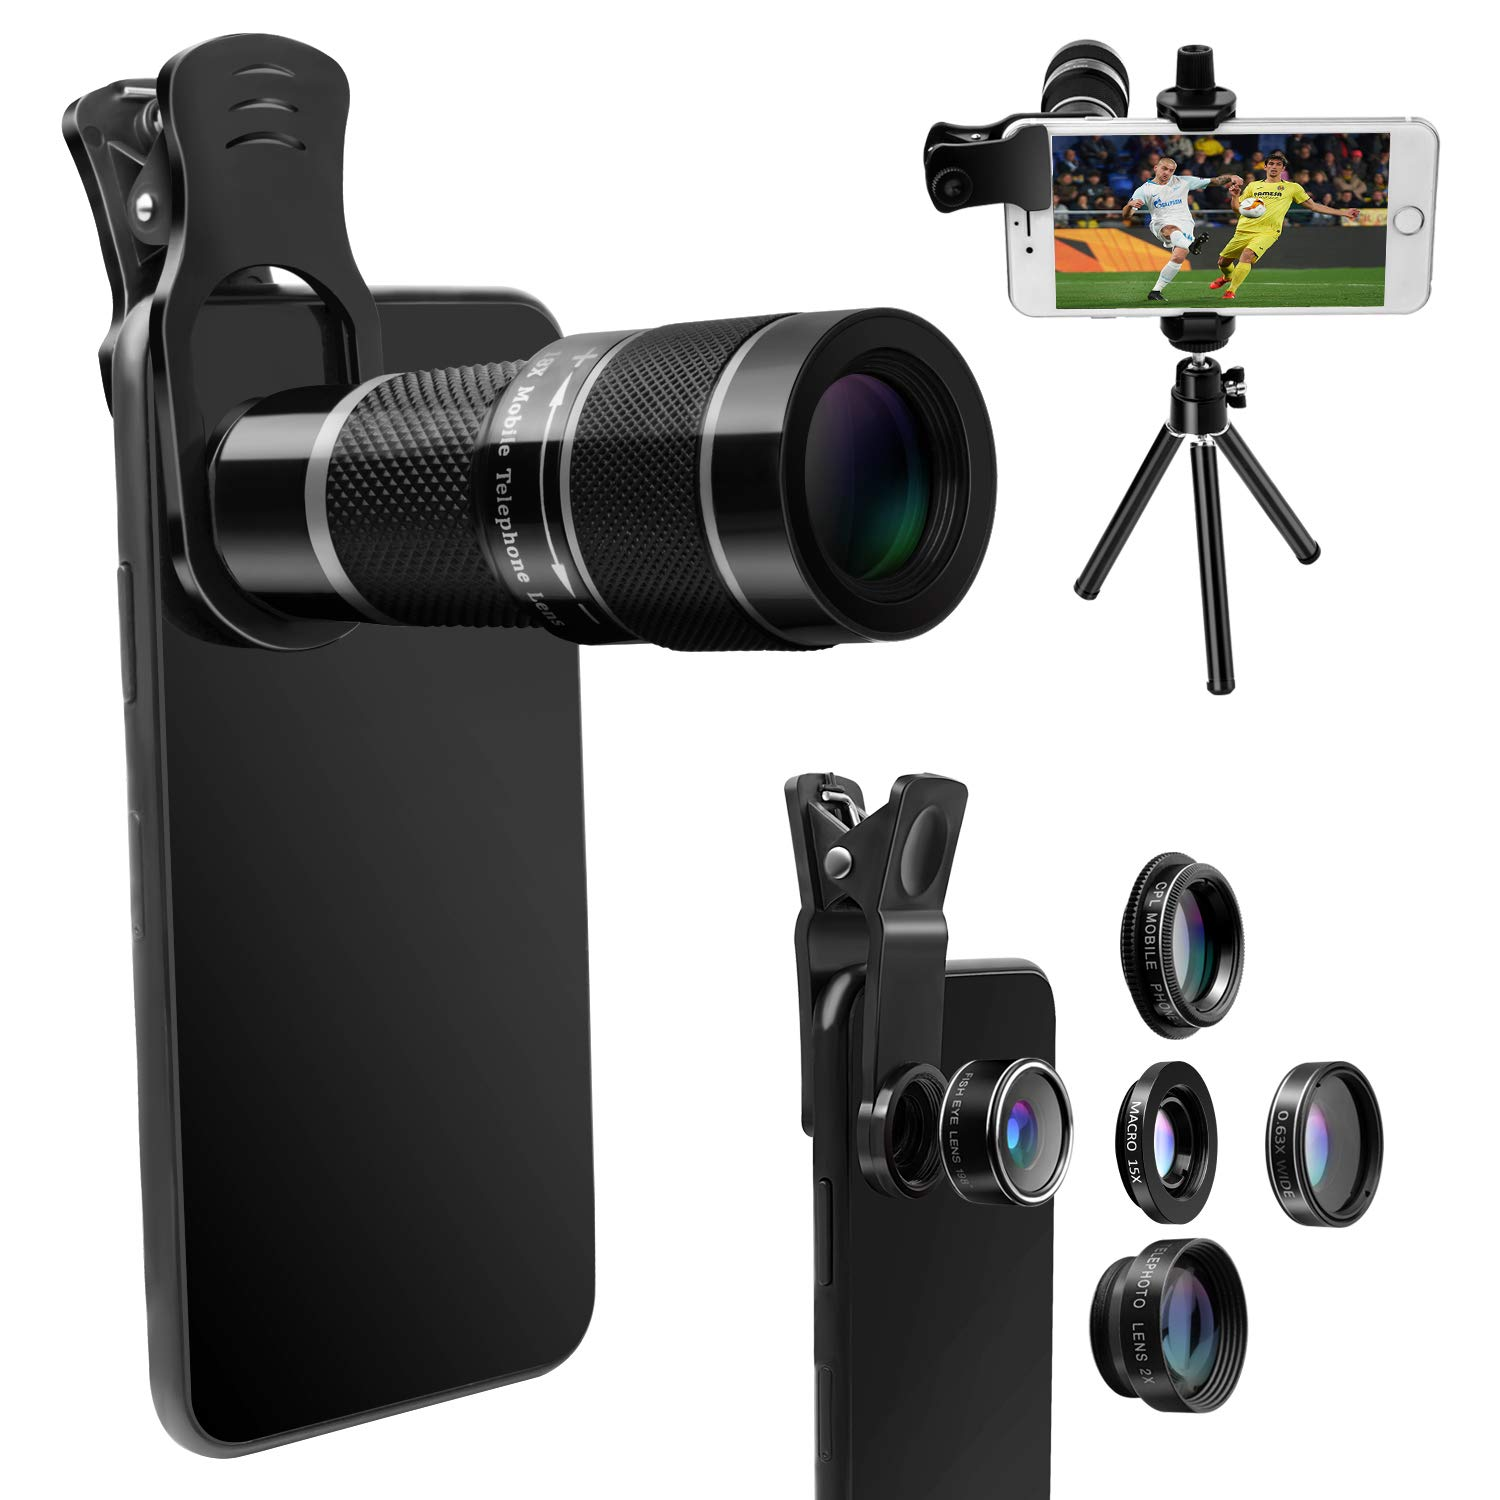 Cell-Phone Lens Kit with Tripod+Remote Shutter,6 in 1 Camera Lens Set for iPhone-18X Telephoto Lens+Wide Angle& Macro Lens+Fisheye+2X Lens+CPL, for Most Smart-Phone